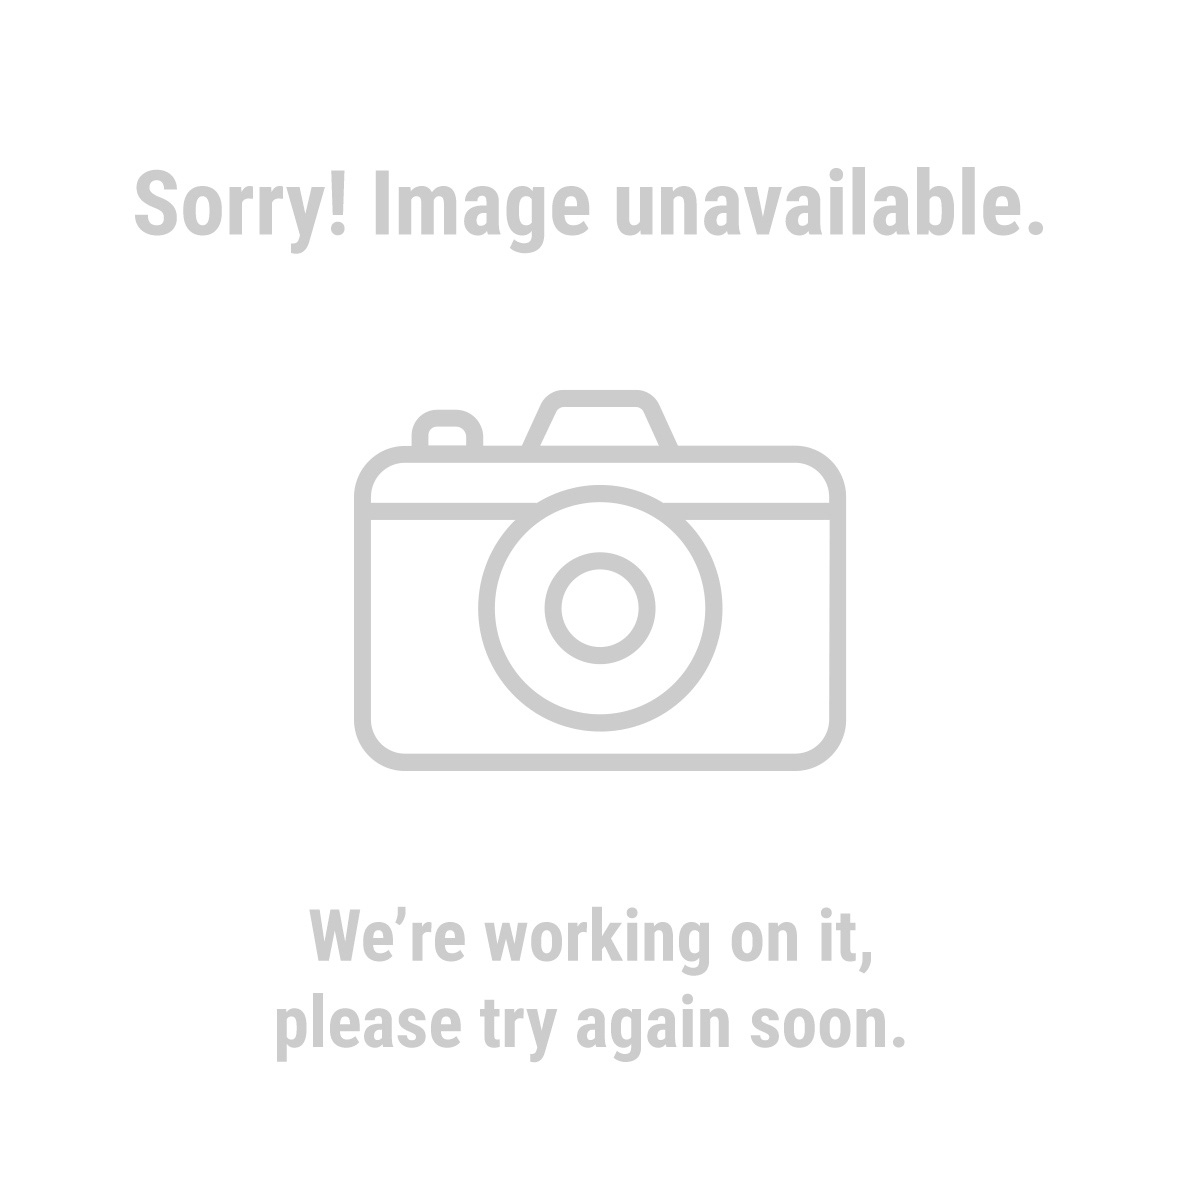 Badland Winches 61237 2000 lb. Marine Winch